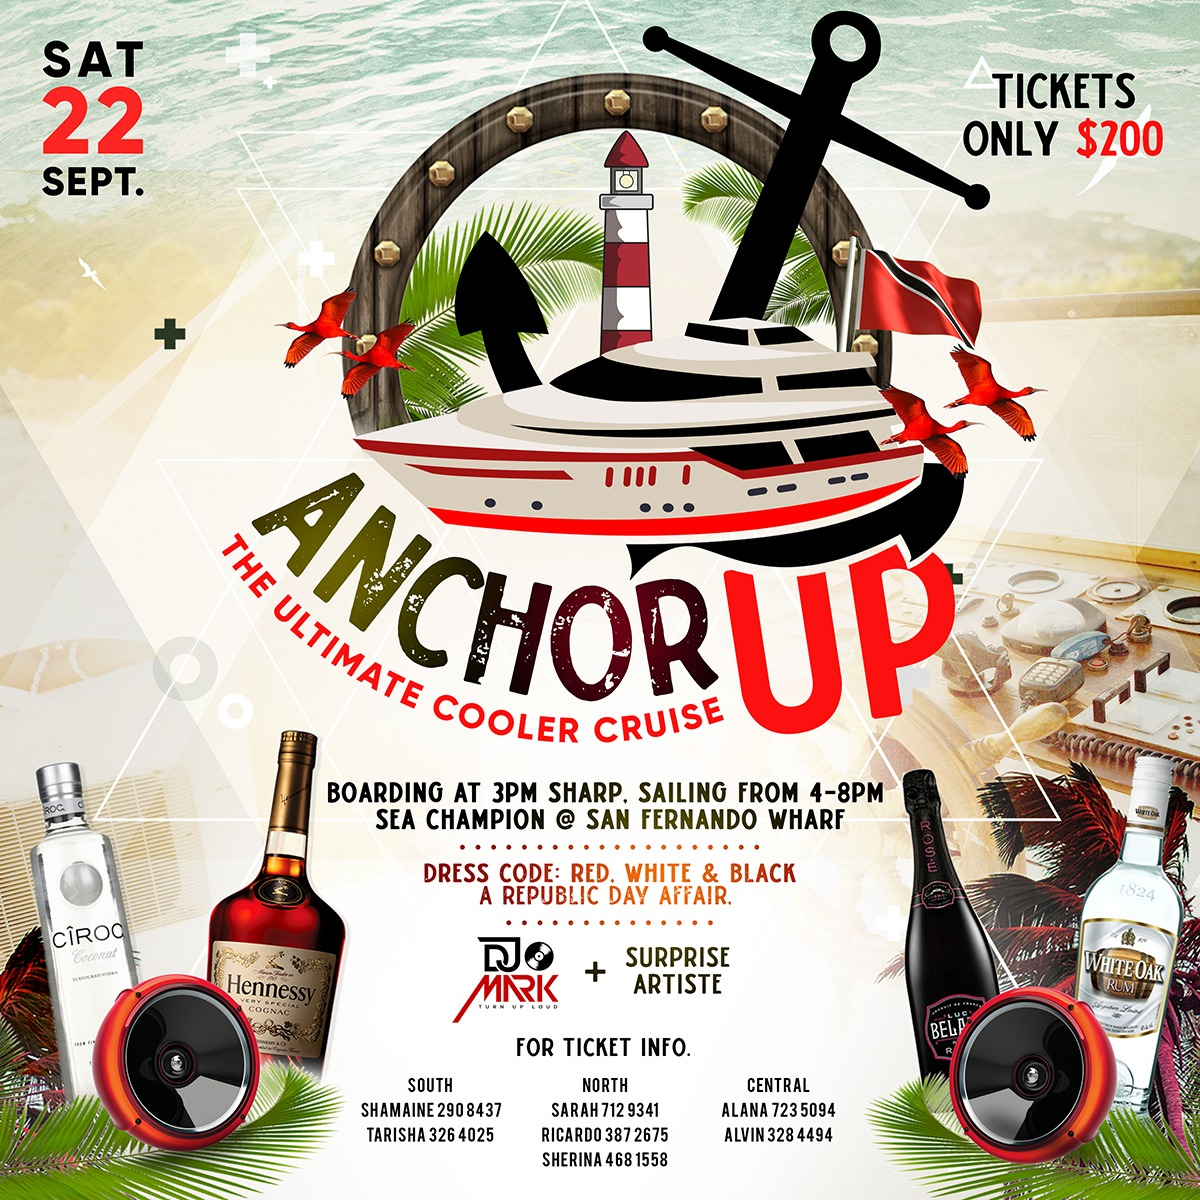 ANCHOR UP COOLER CRUISE